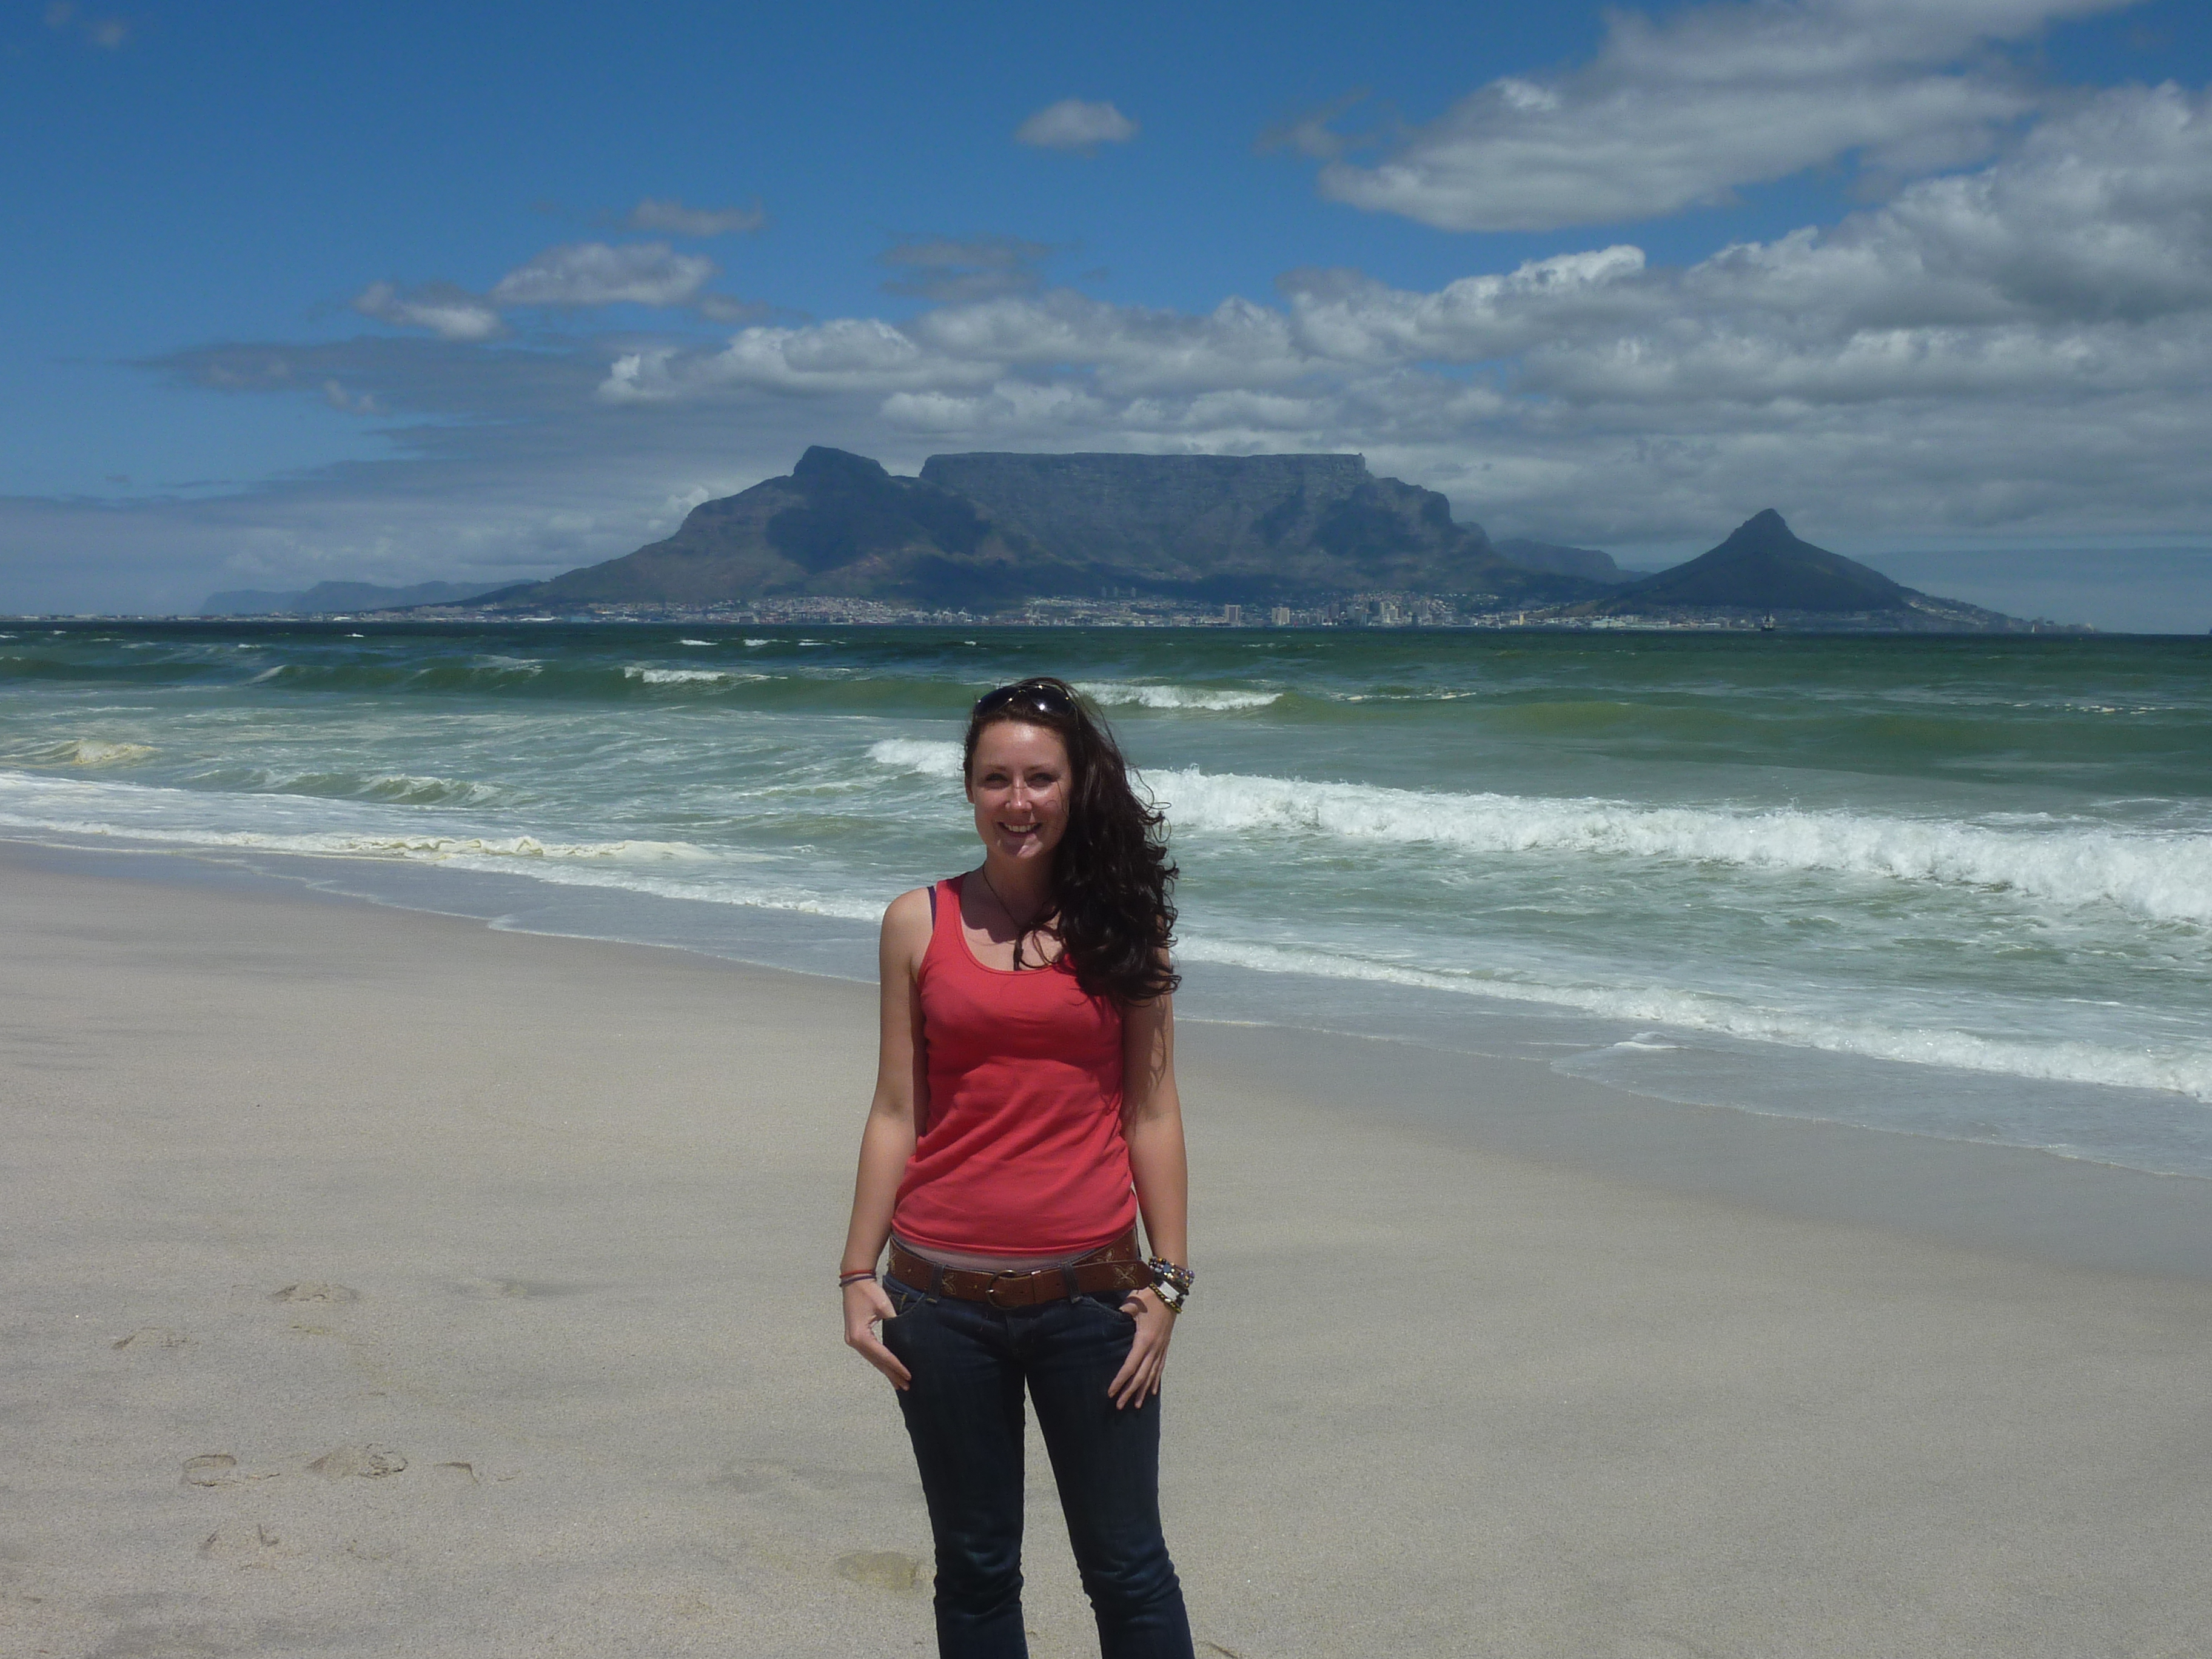 At The End Of My Trip, My Boyfriend Came To Meet Me In South Africa Visa & Passport  Requirements